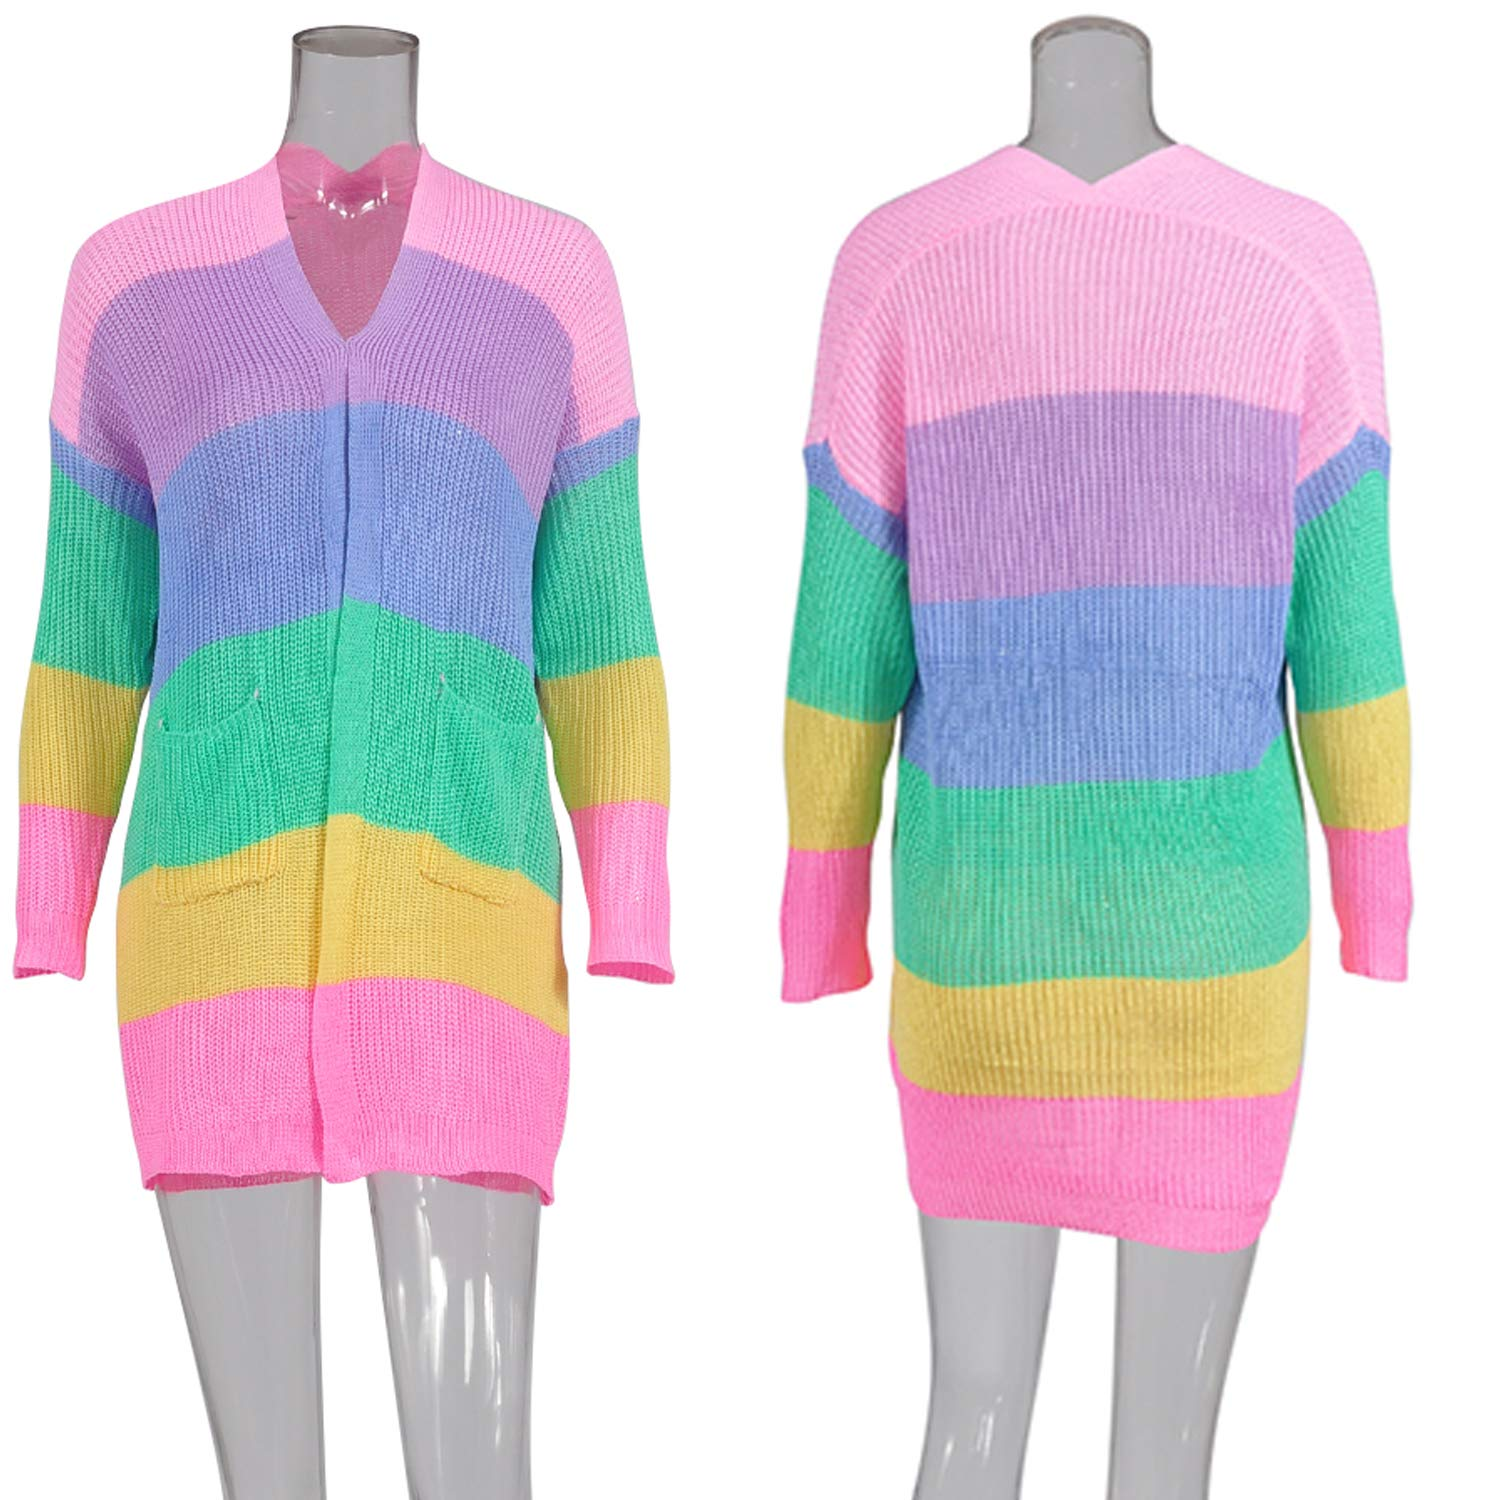 ECOWISH Womens Color Block Striped Draped Kimono Cardigan with Pockets Long Sleeve Open Front Casual